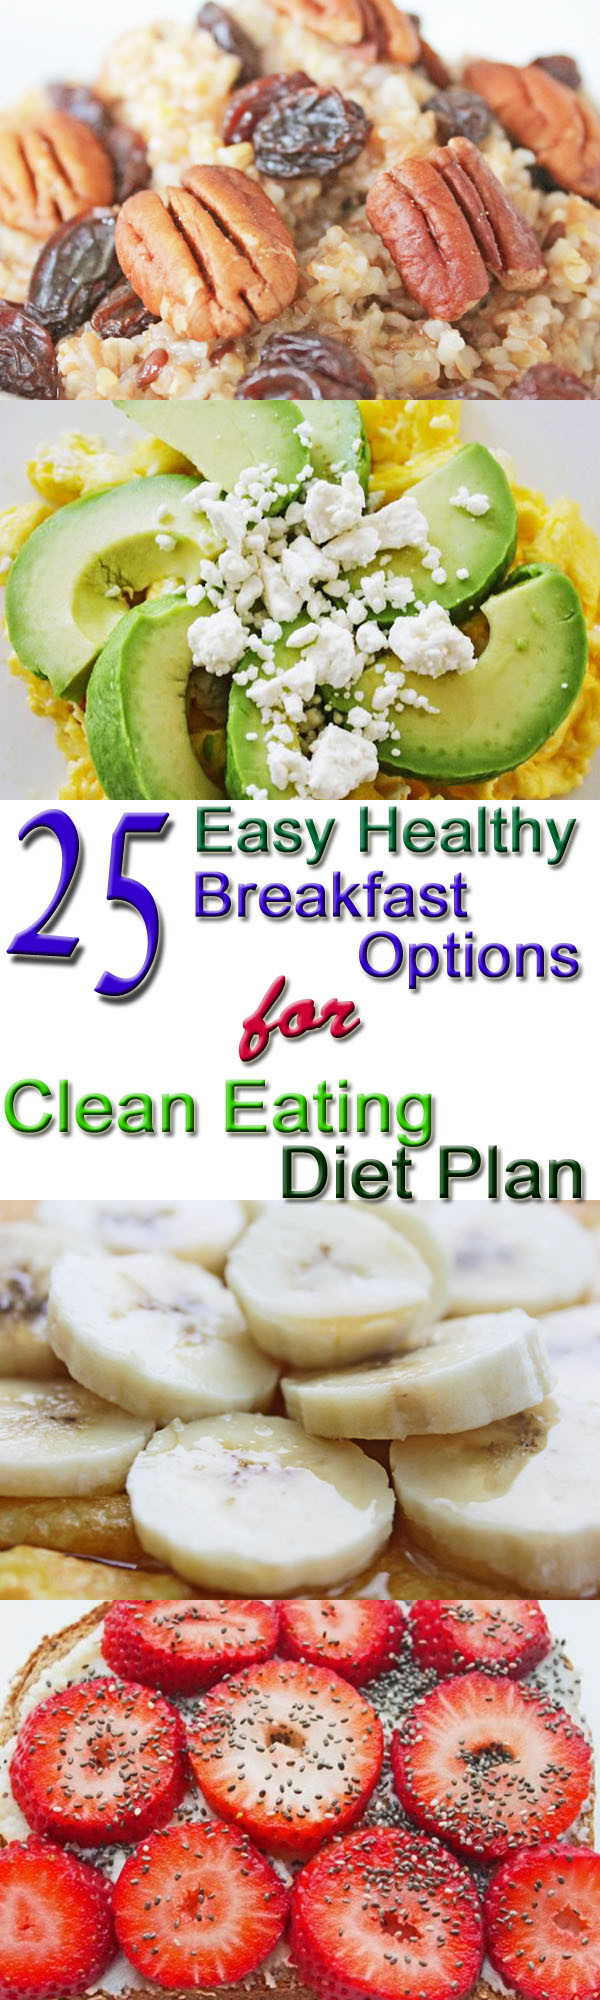 Easy Healthy Breakfast Recipes  25 Healthy Breakfast Options